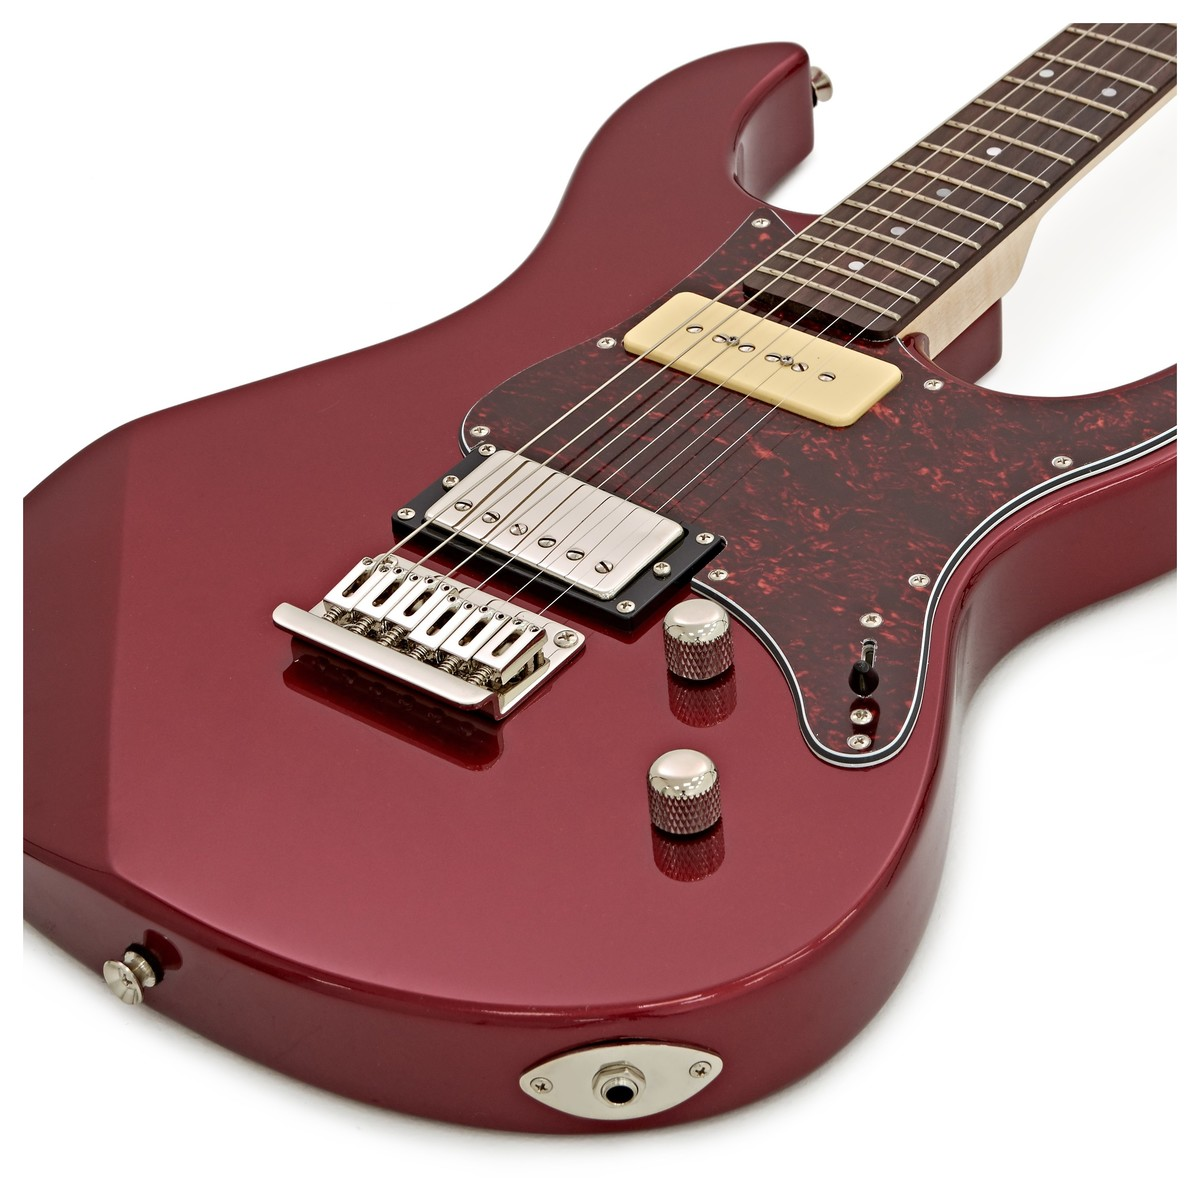 yamaha pacifica 311h red metallic at gear4music. Black Bedroom Furniture Sets. Home Design Ideas